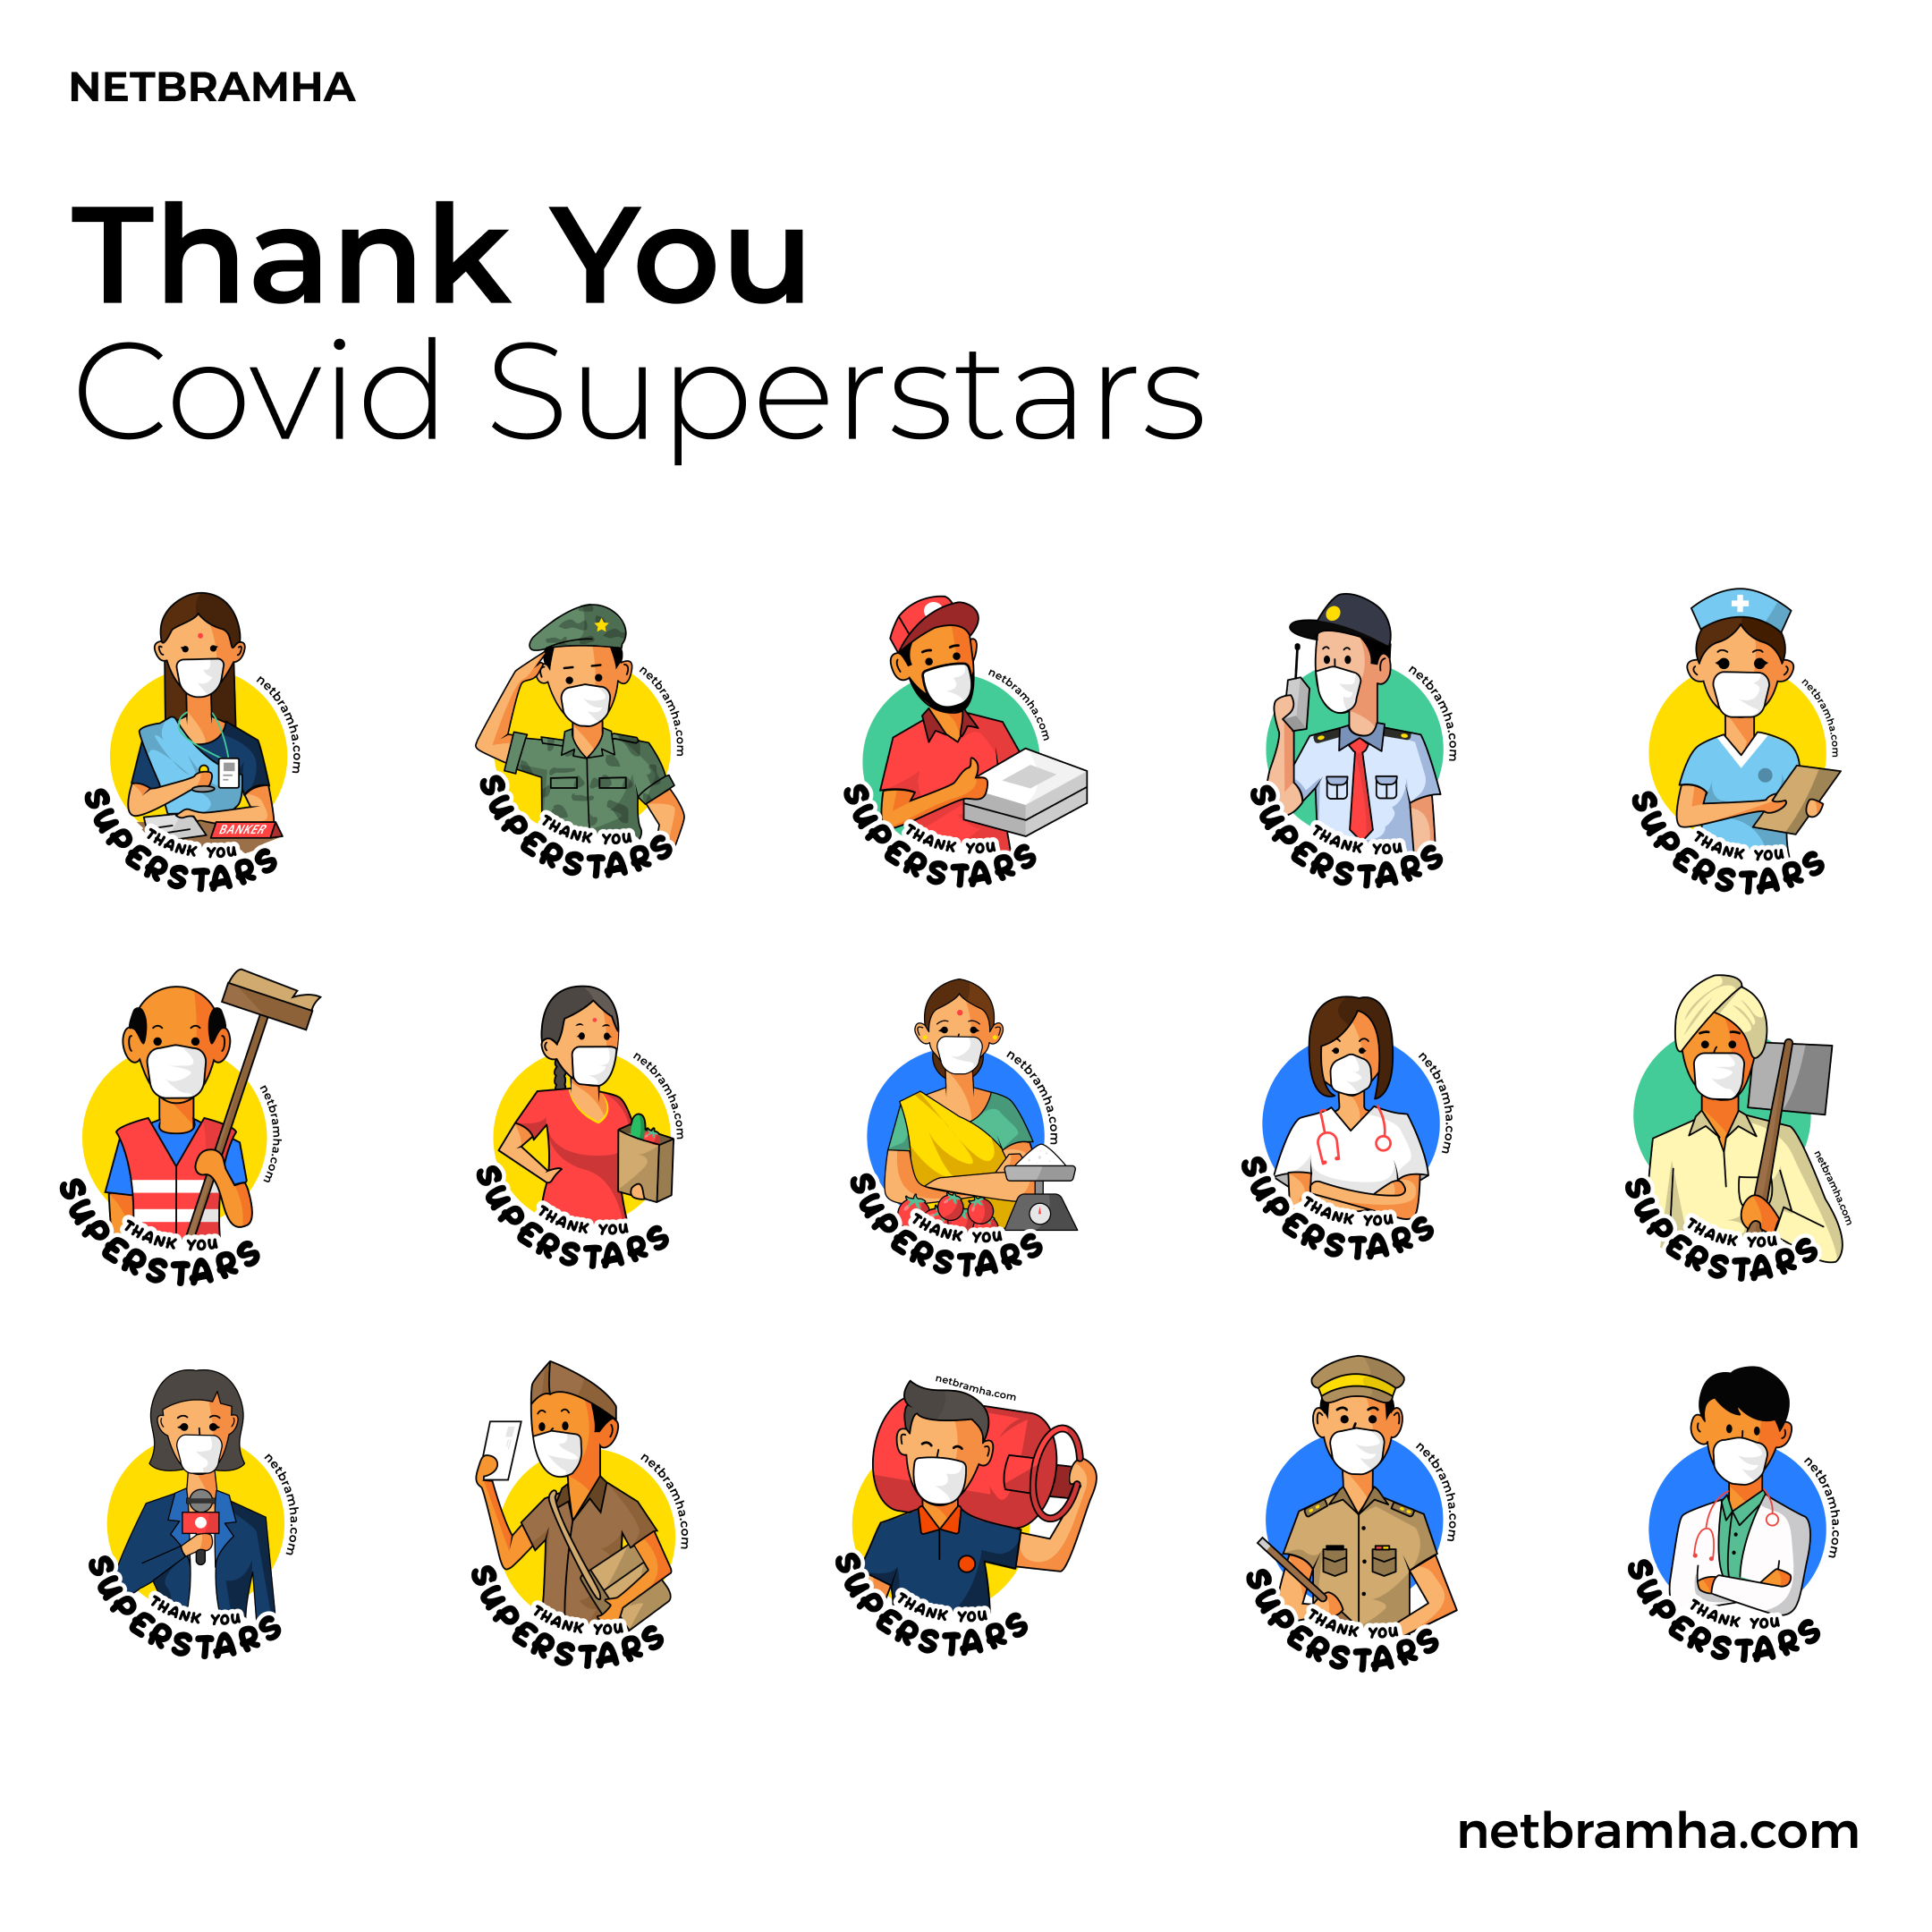 NetBramha says thanks to the COVID Superheroes with a unique creation